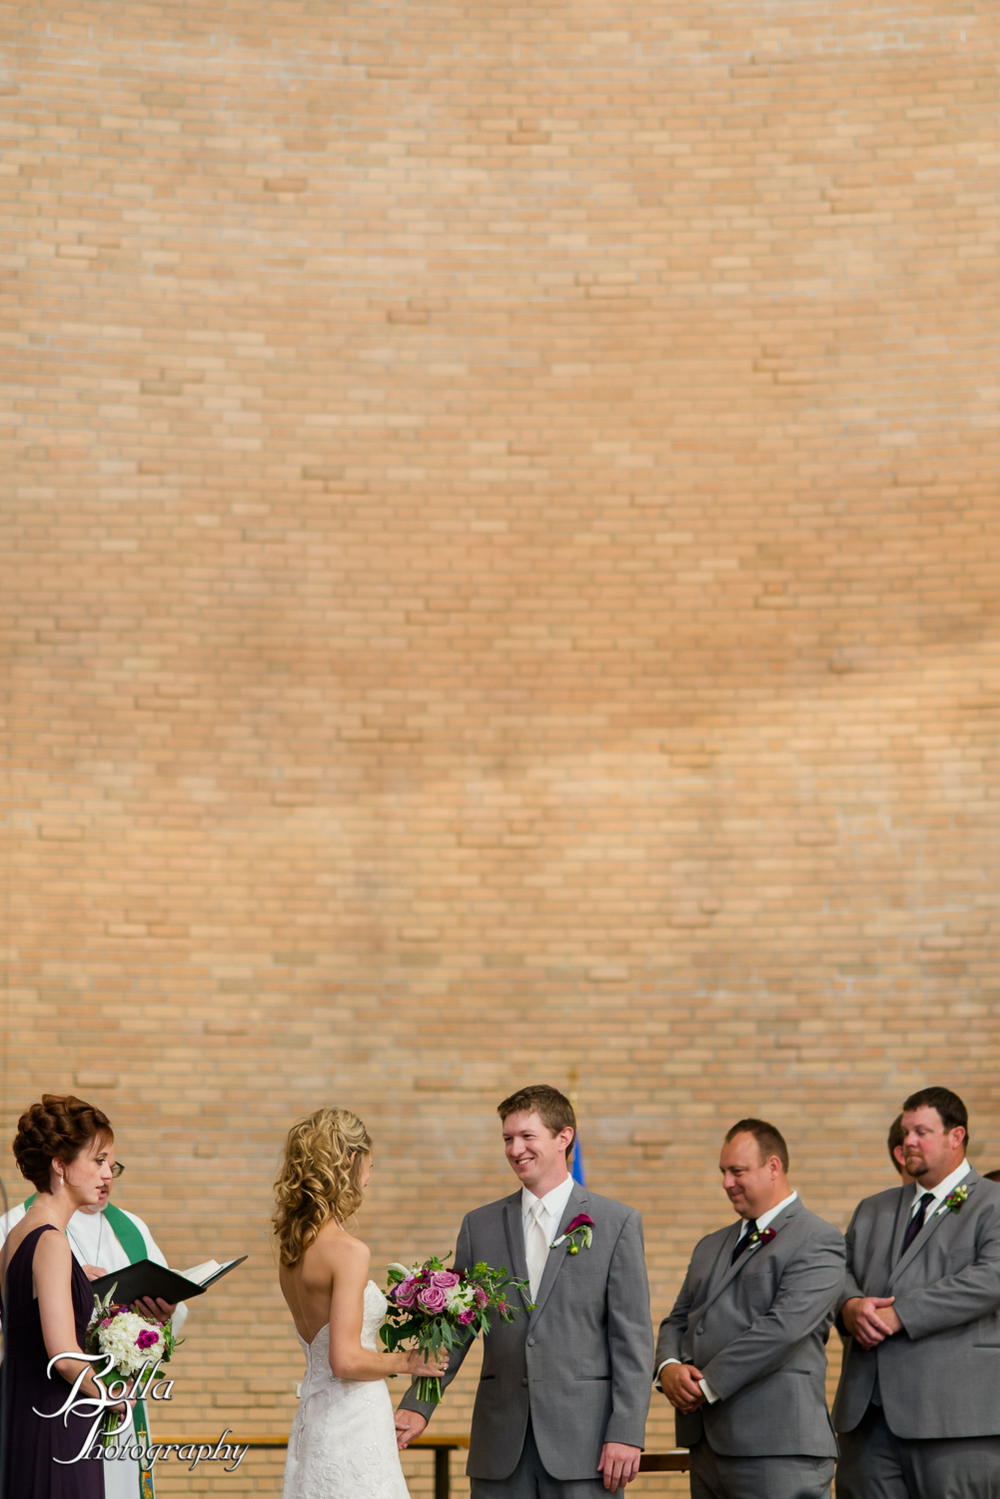 Bolla_Photography_St_Louis_wedding_photographer-0185.jpg